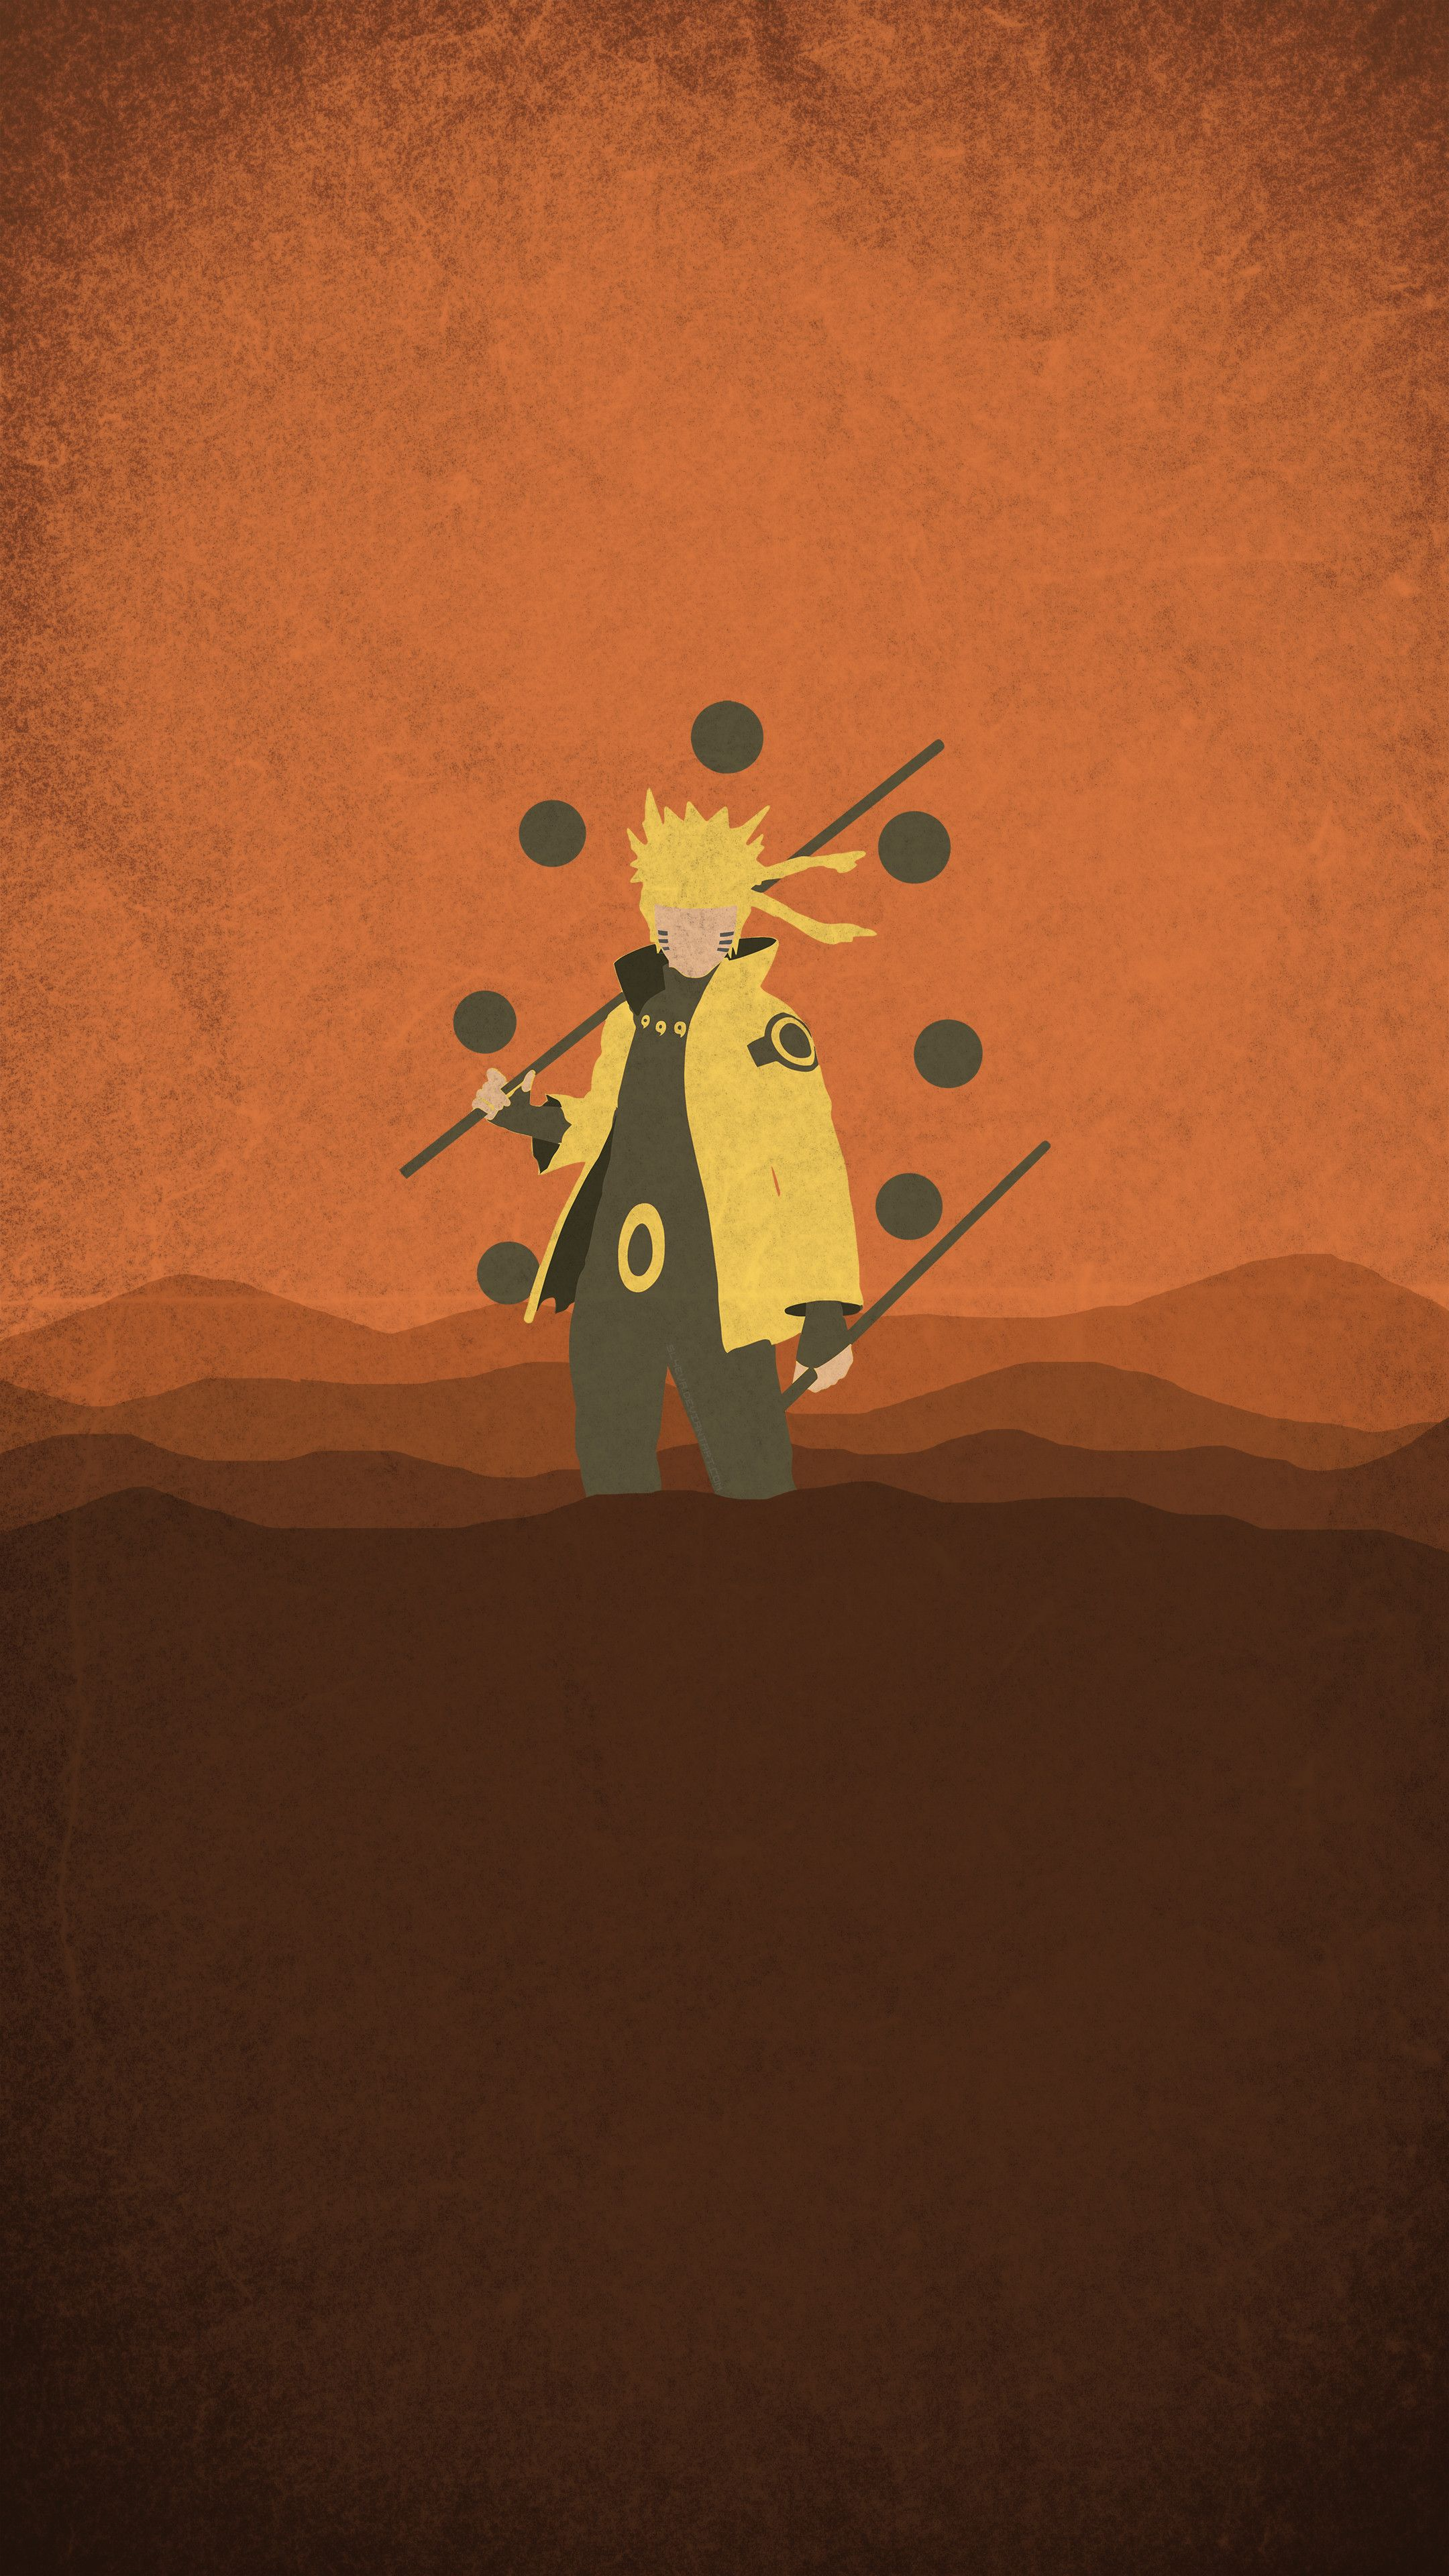 cool iphone wallpapers lock screen   HD Wallpapers   Pinterest   Wallpaper, Naruto and Anime